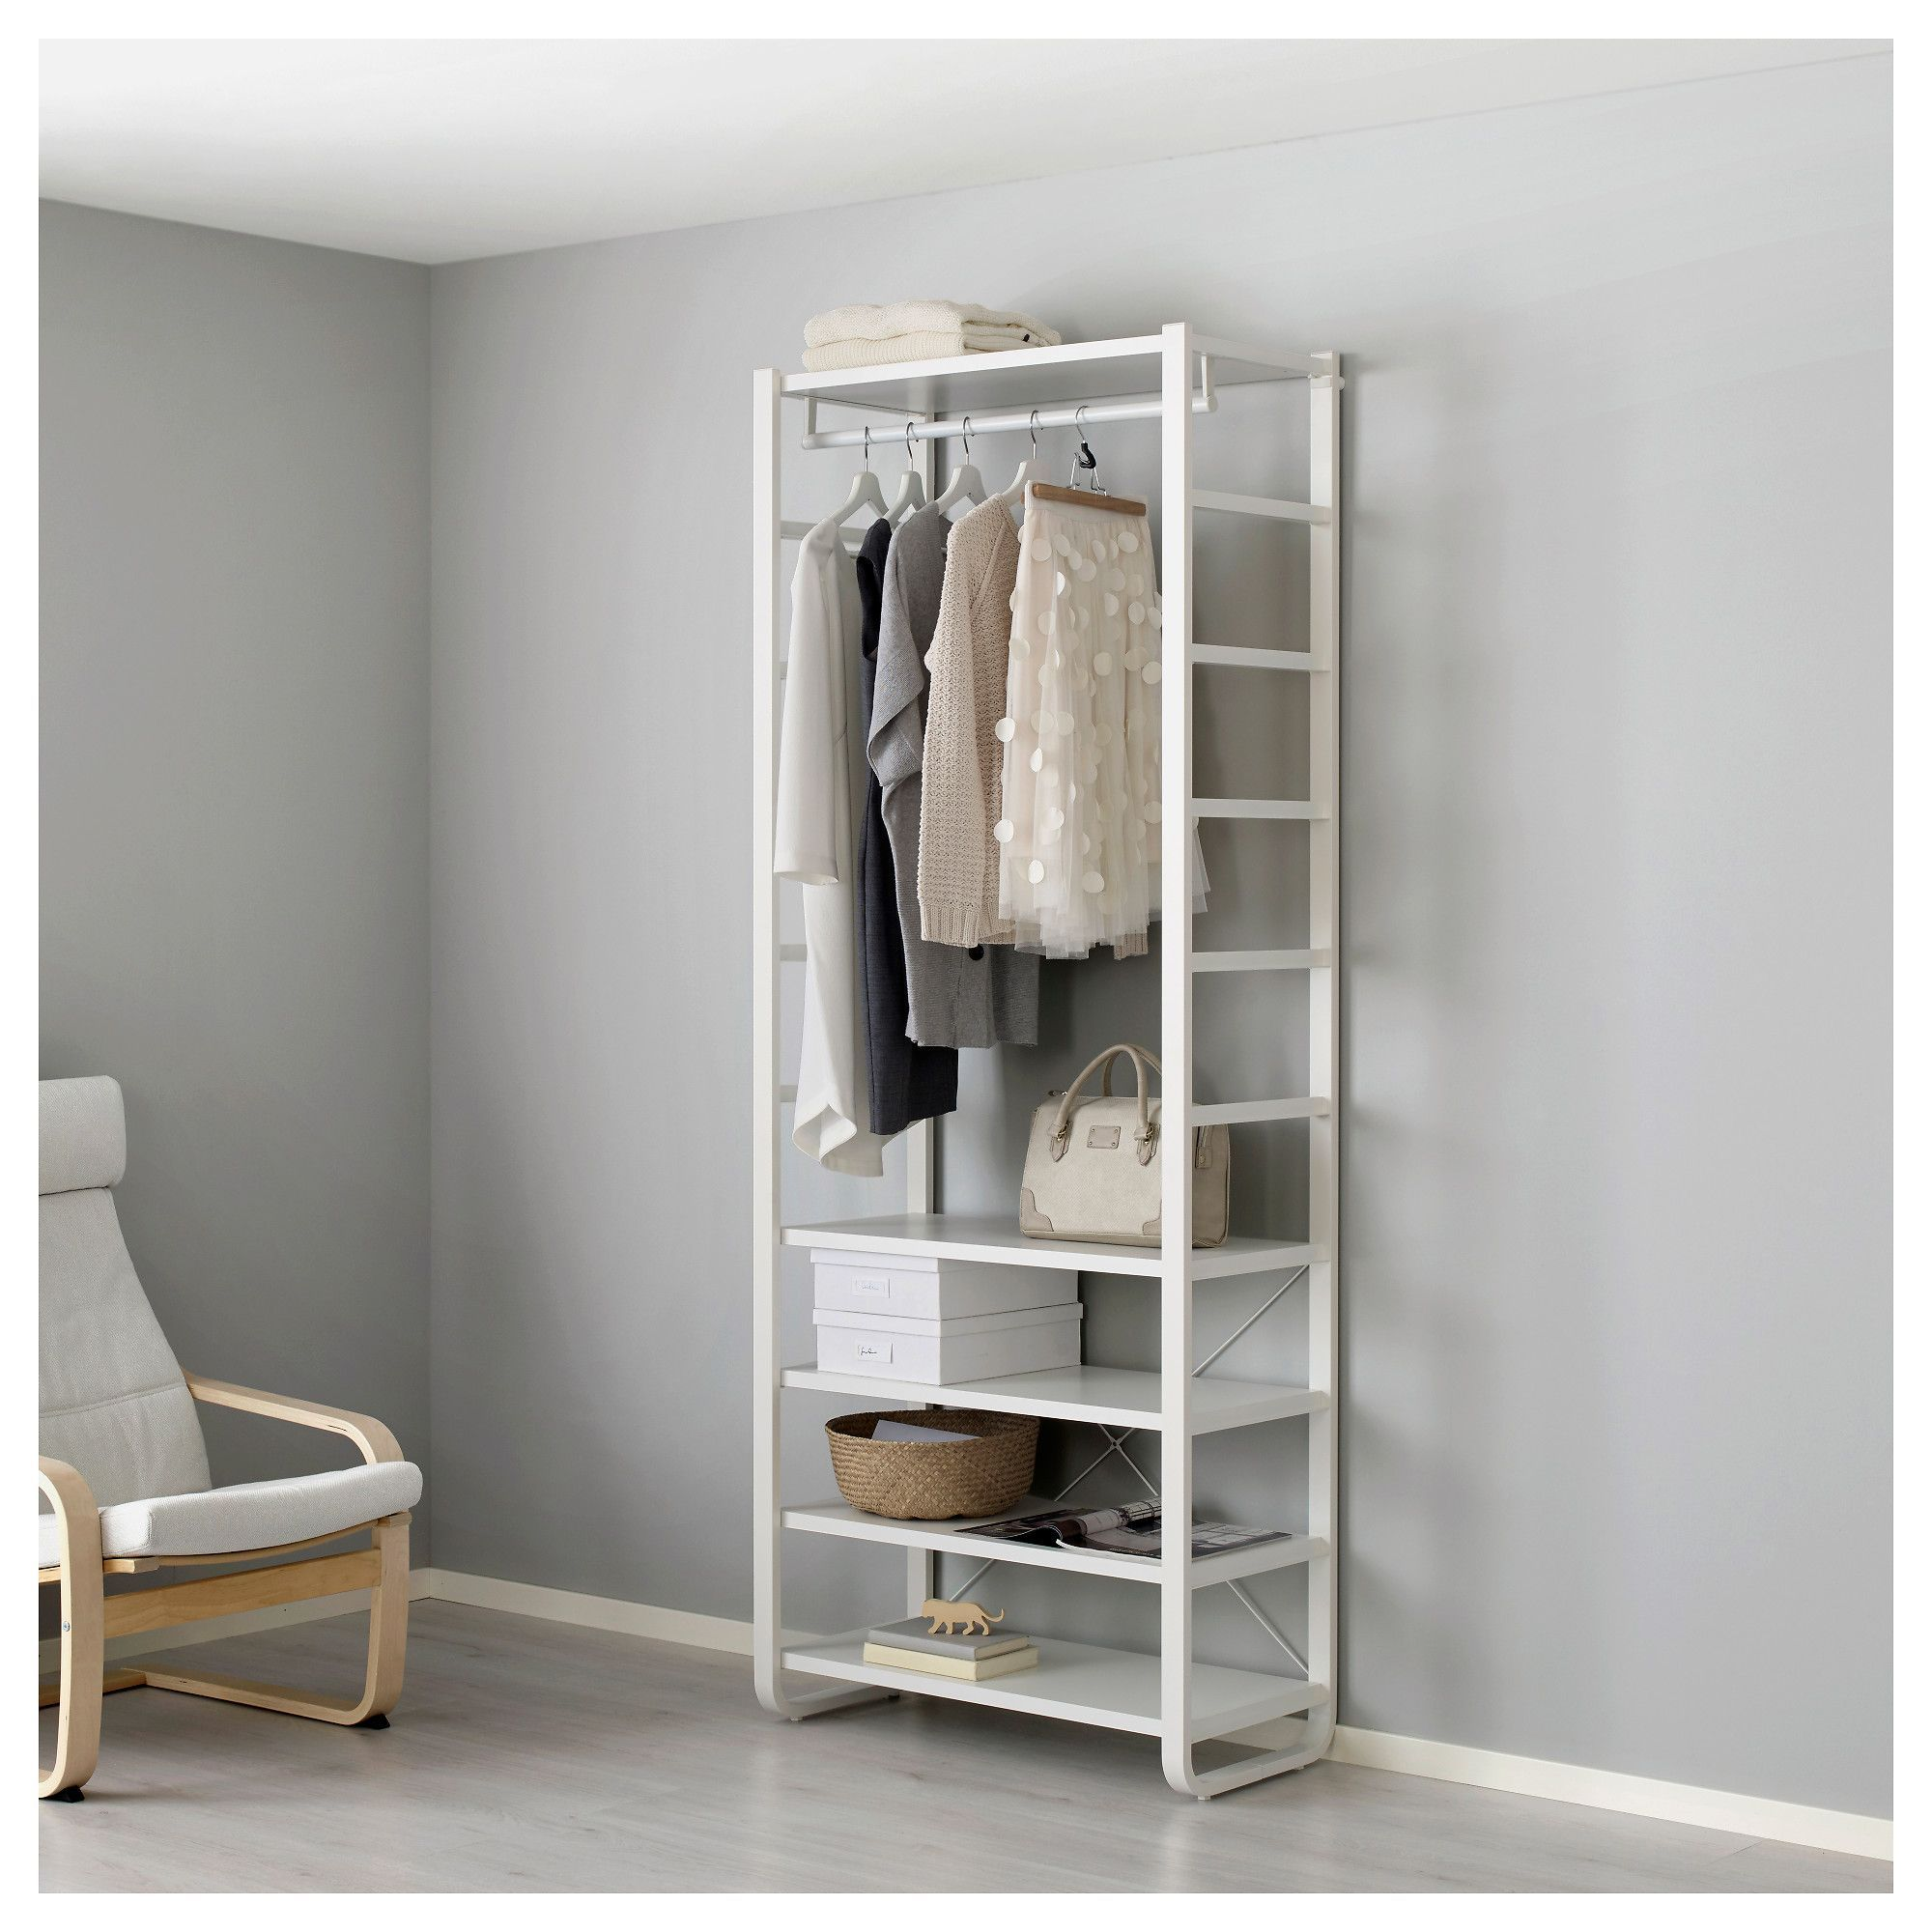 Ikea systems for tiny apartments studio apartment room divider